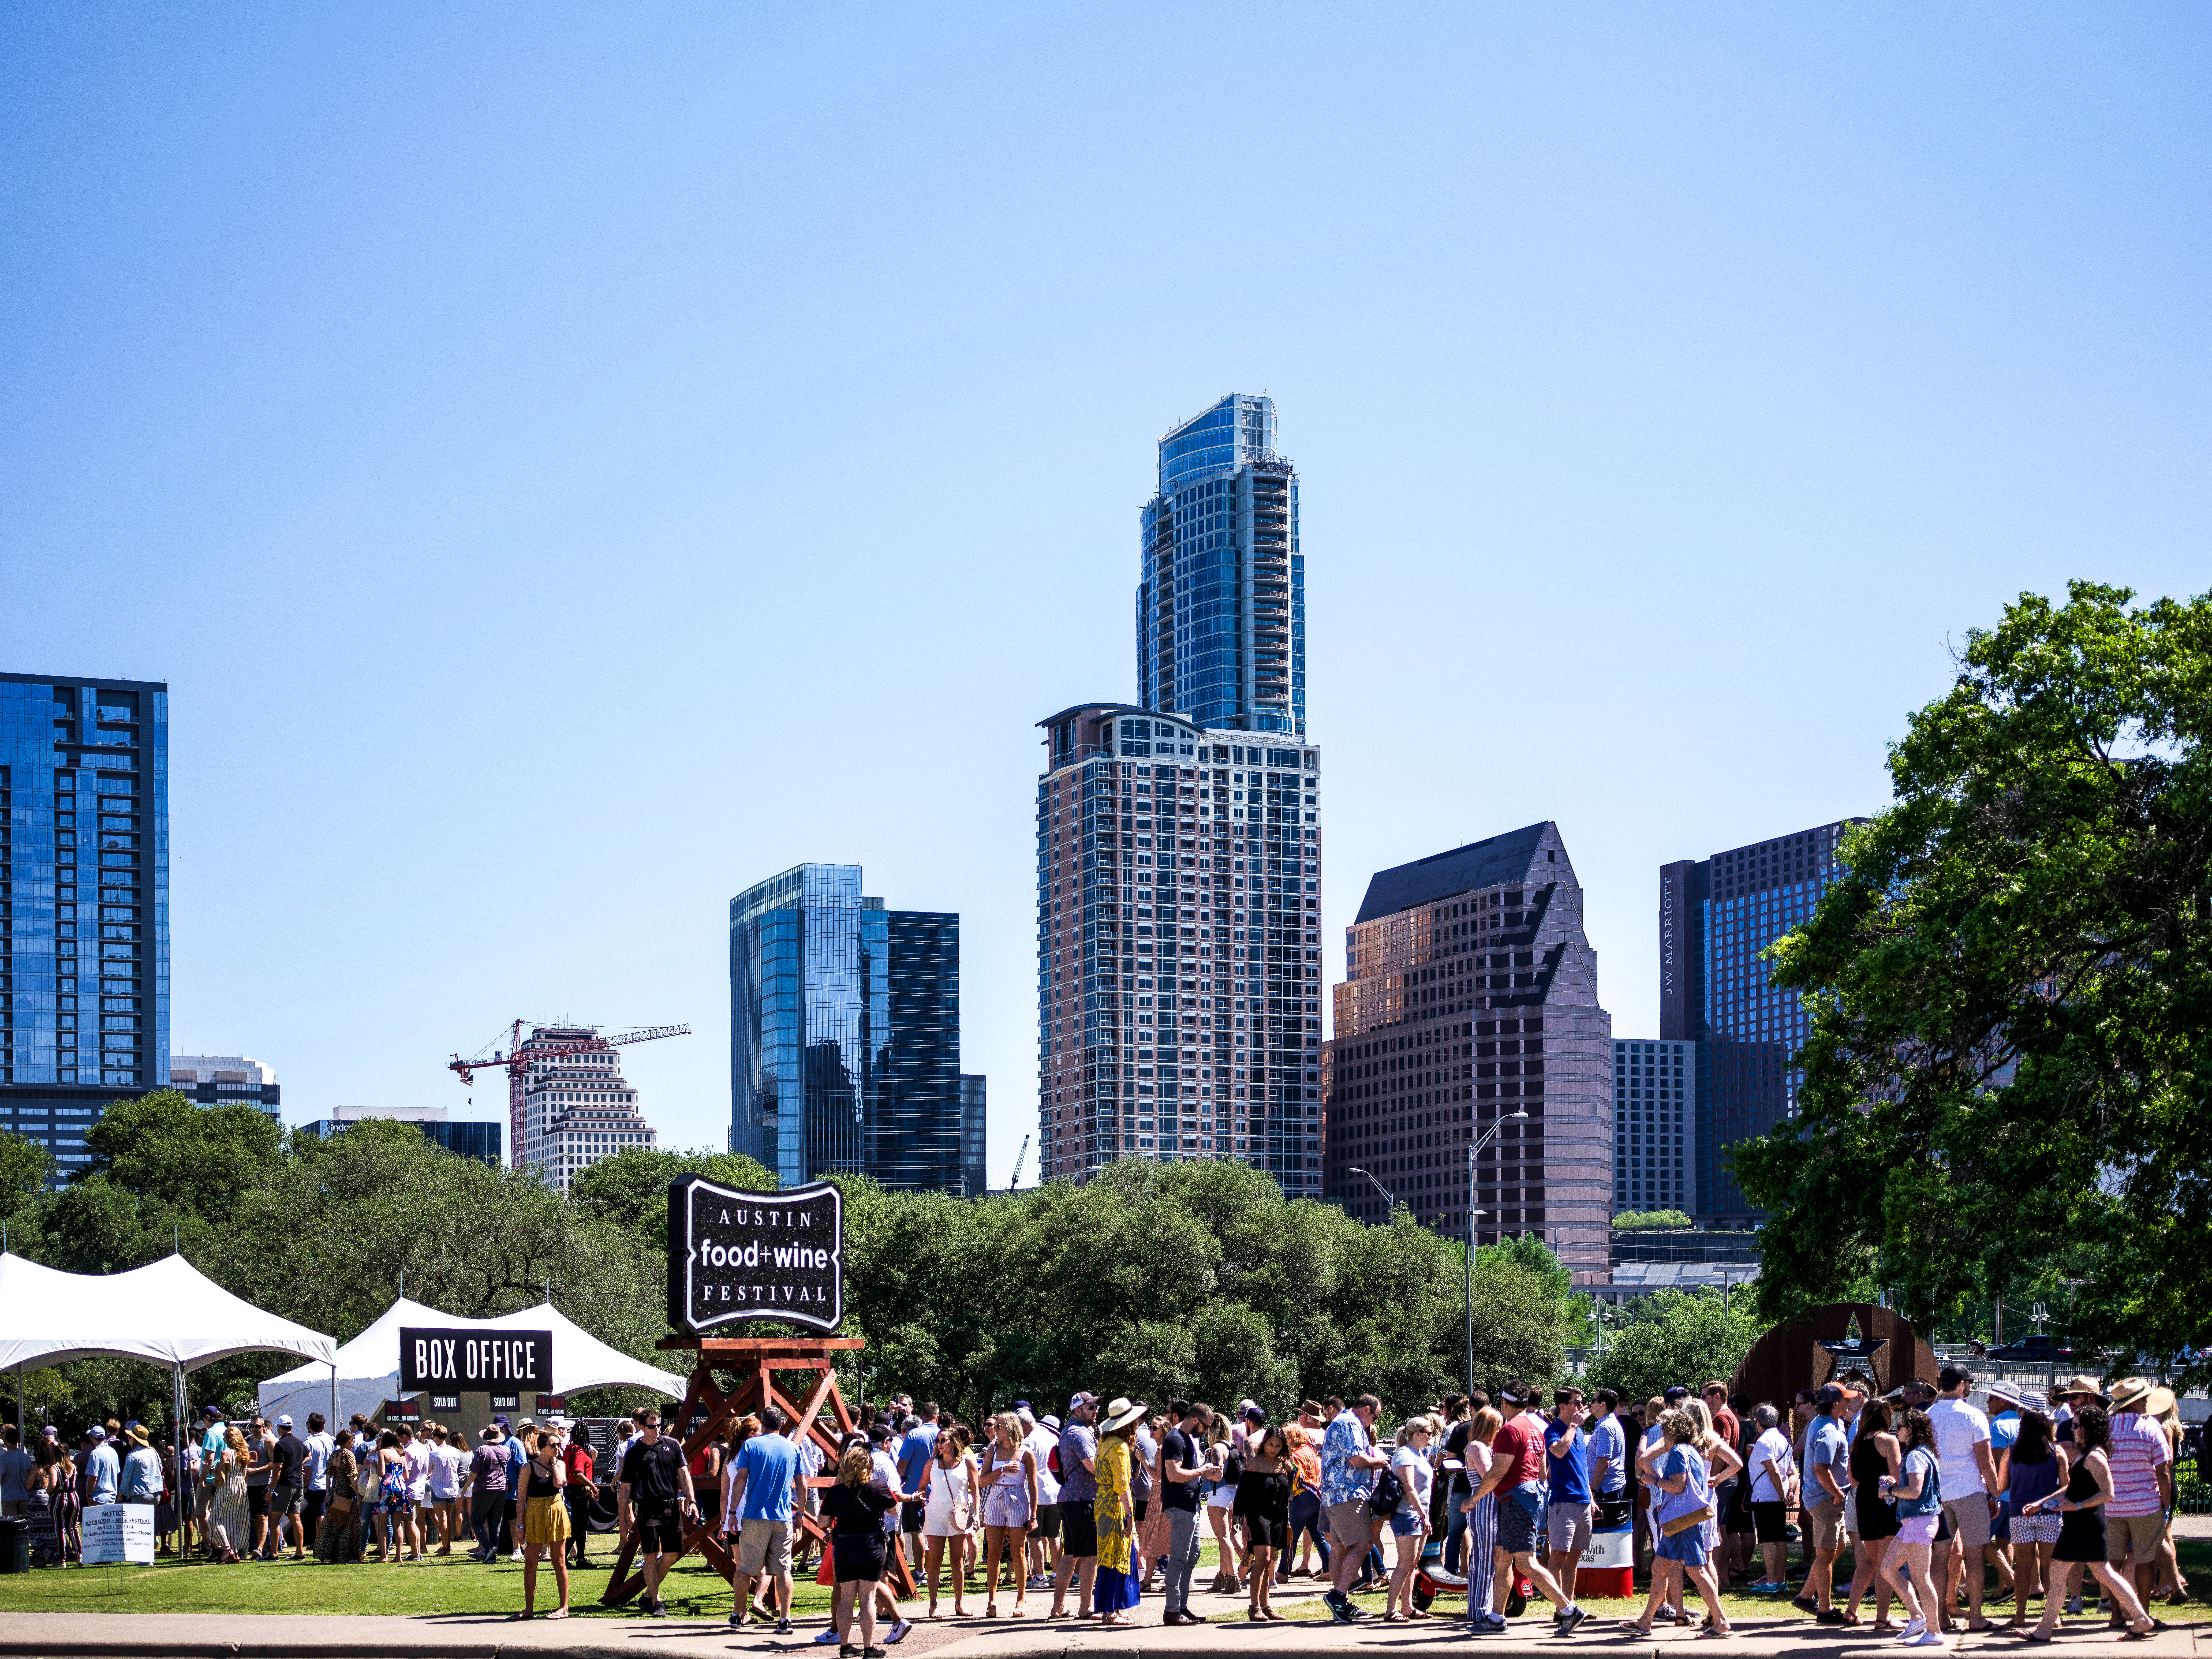 The crowd at Austin Food & Wine Festival 2019